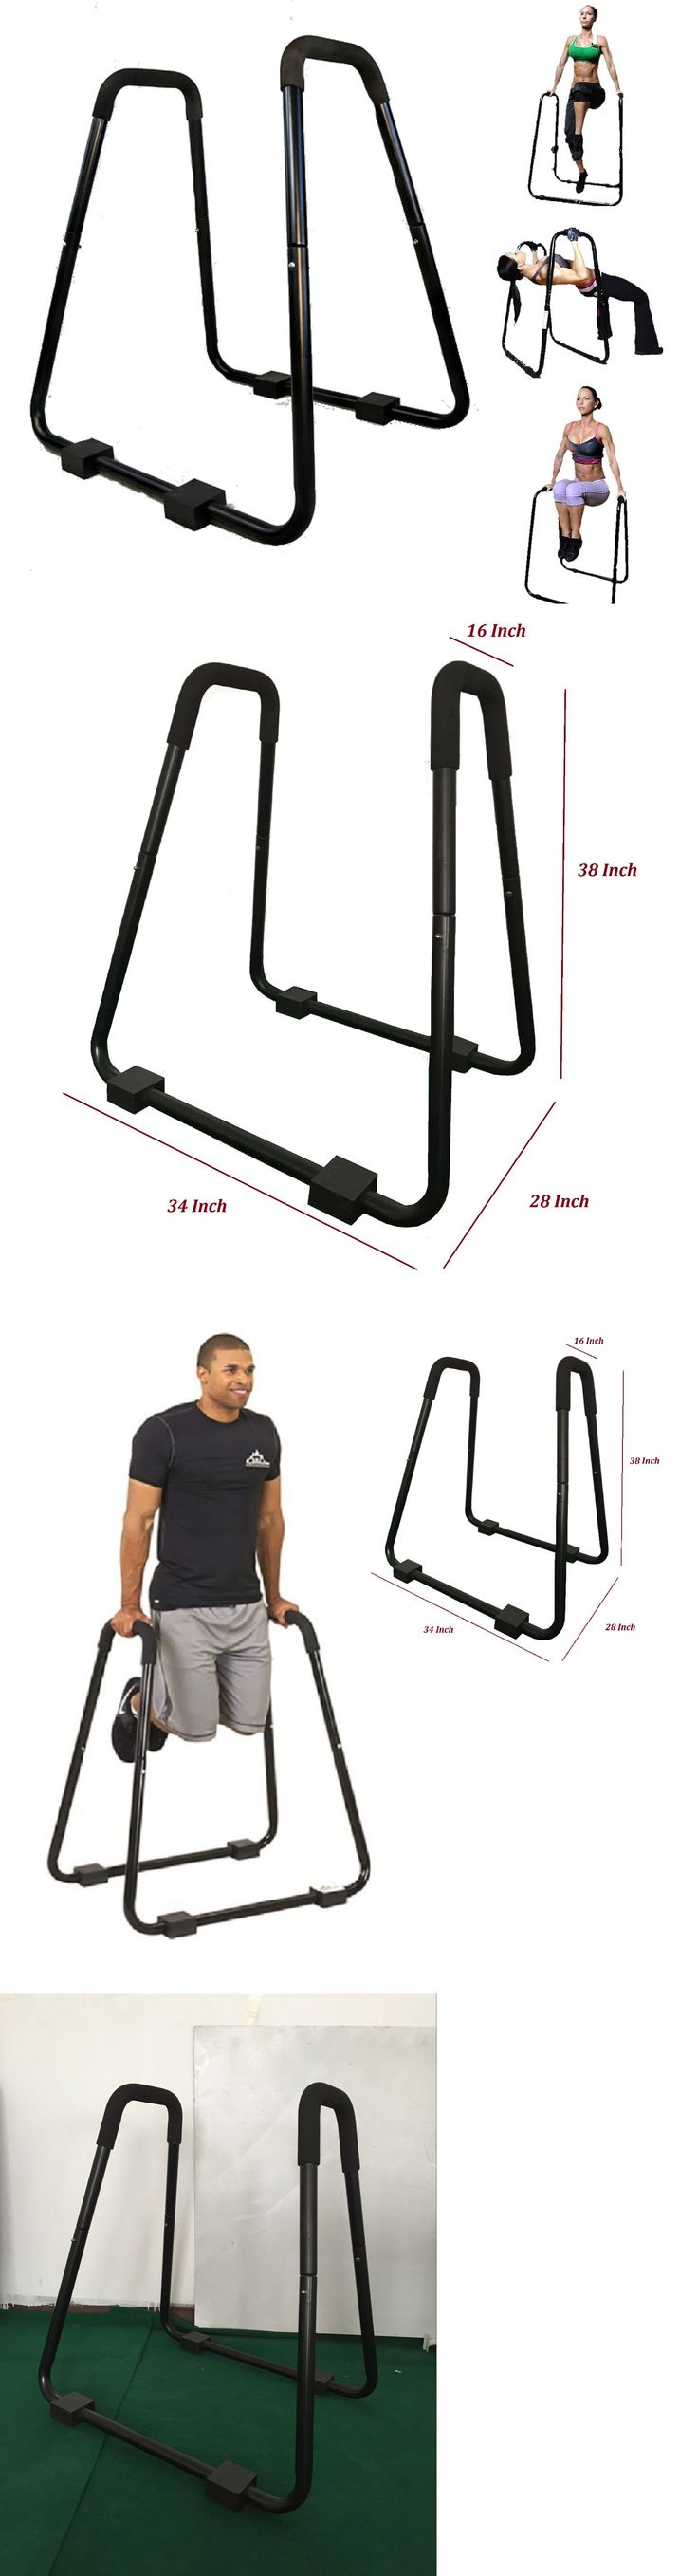 Pull Up Bars 179816: Dip Station Heavy Duty Stand Body Press Pull Up Bars Tricep Pushup Exercise Gym -> BUY IT NOW ONLY: $253.5 on eBay!